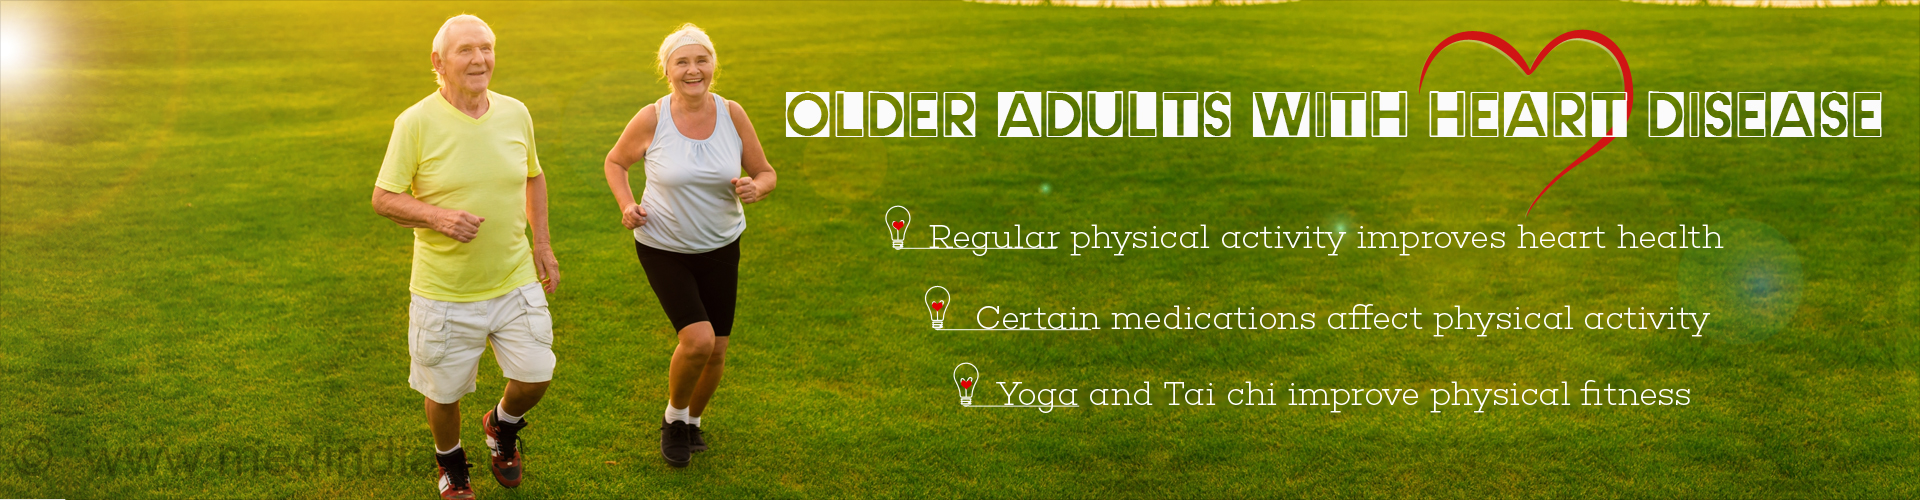 Regular Physical Activity Improves Health of Older Adults With Heart Disease